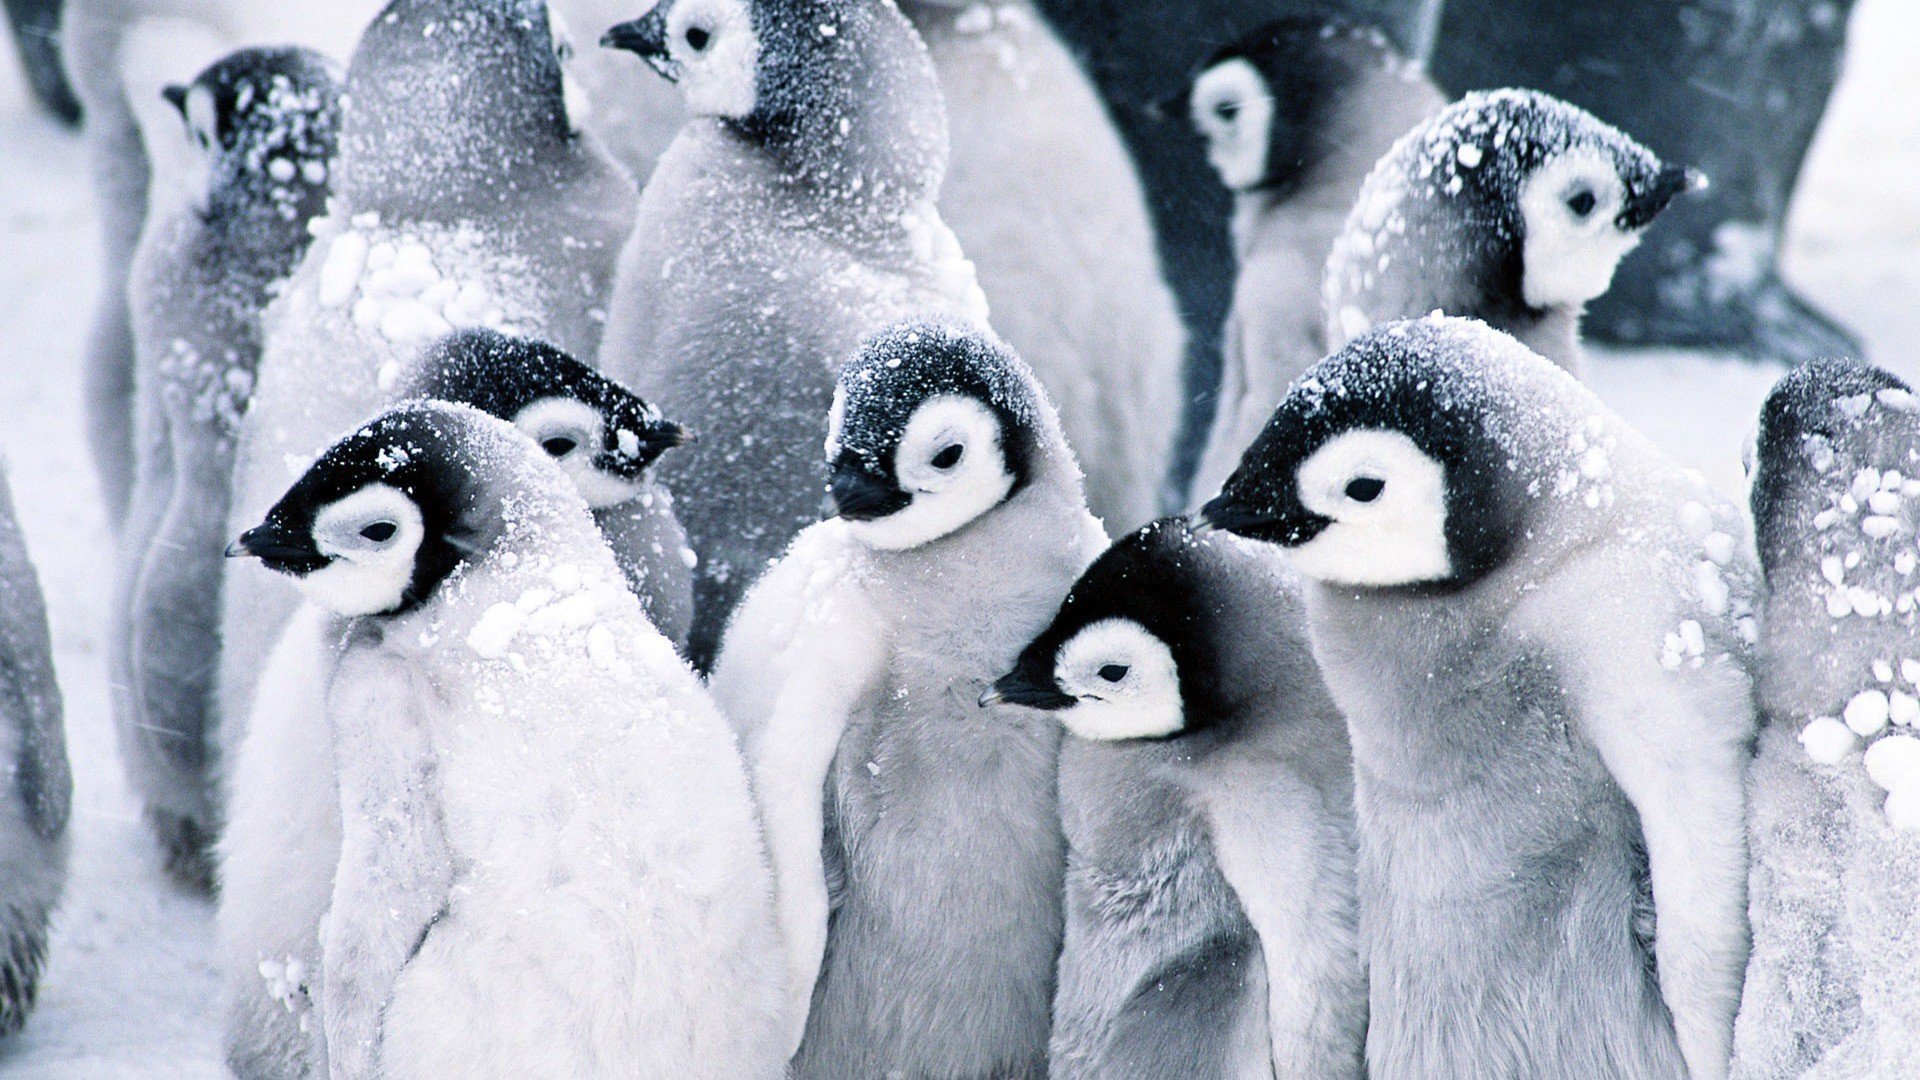 Birds-animals-penguins-1920x1080-UP-wallpaper-wp3403253